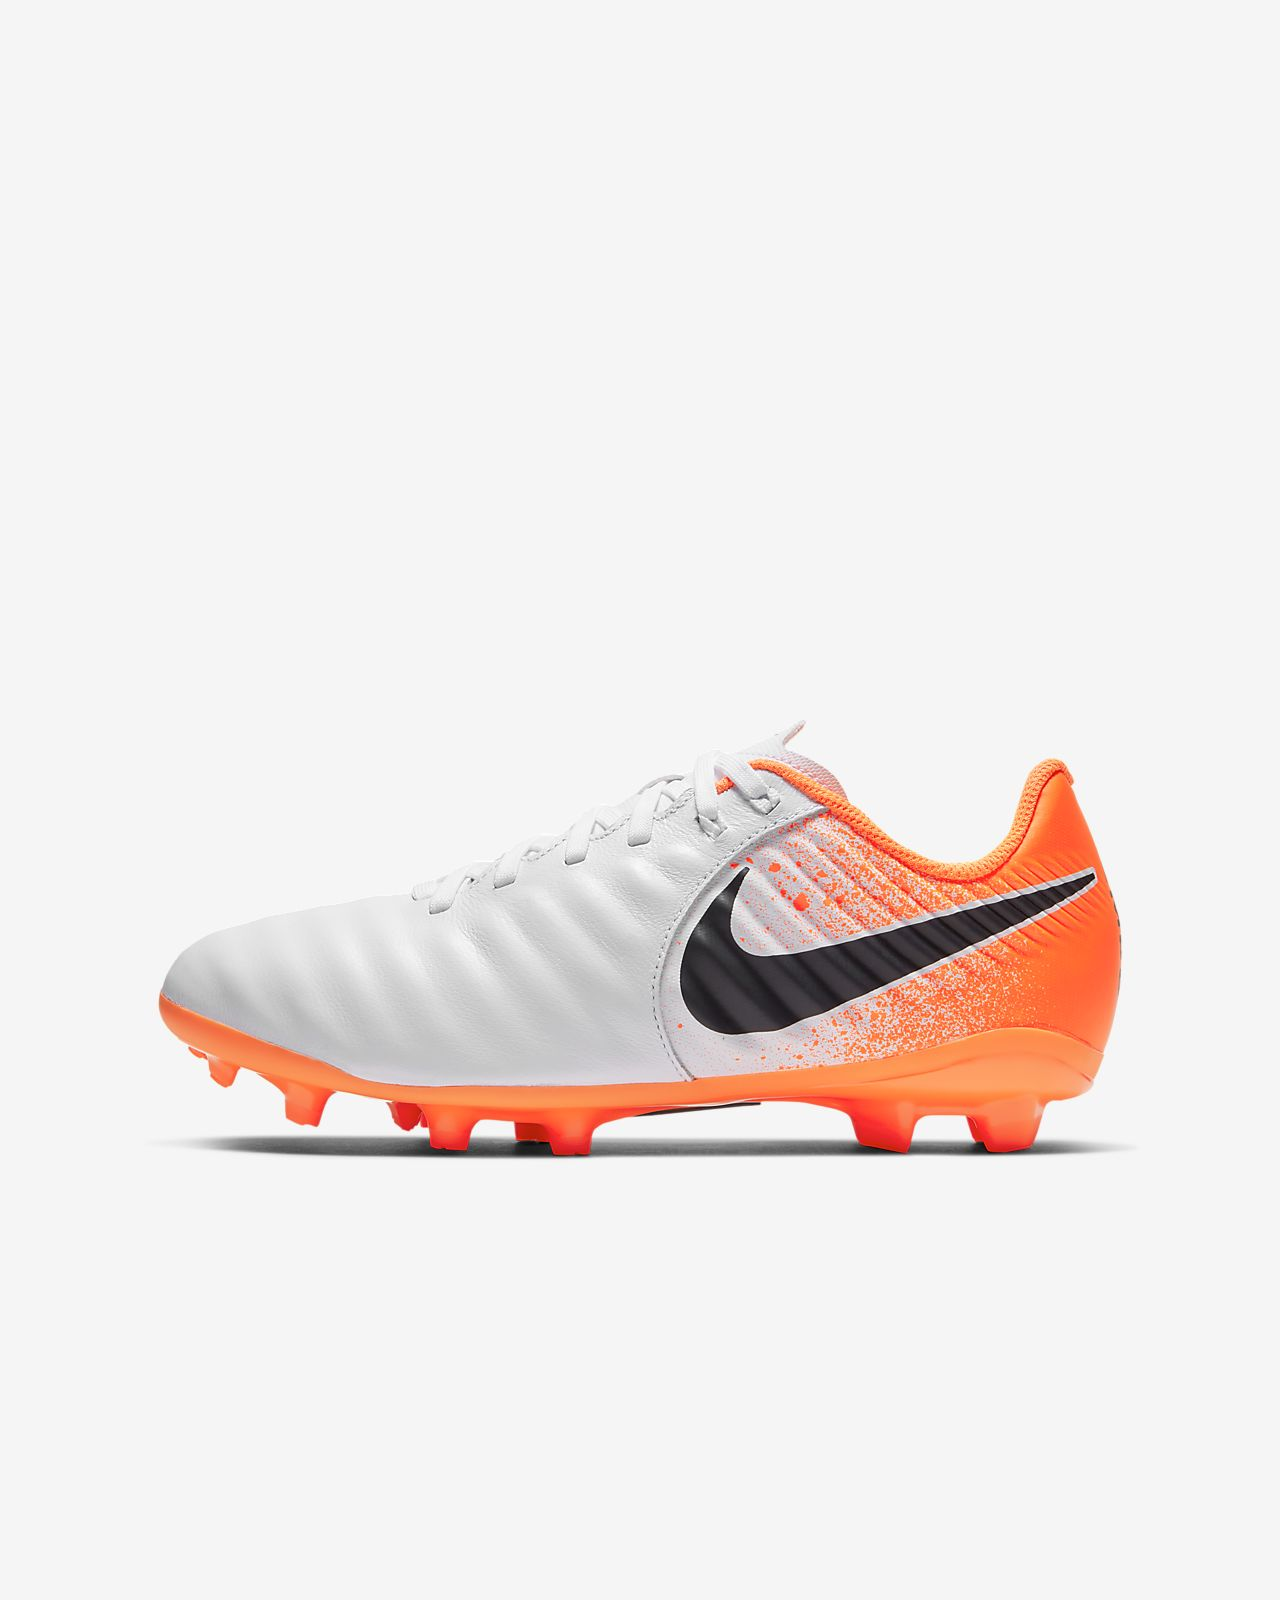 wholesale dealer ee4e6 65d0f ... Scarpa da calcio per terreni duri Nike Jr. Legend 7 Academy FG -  Bambini/